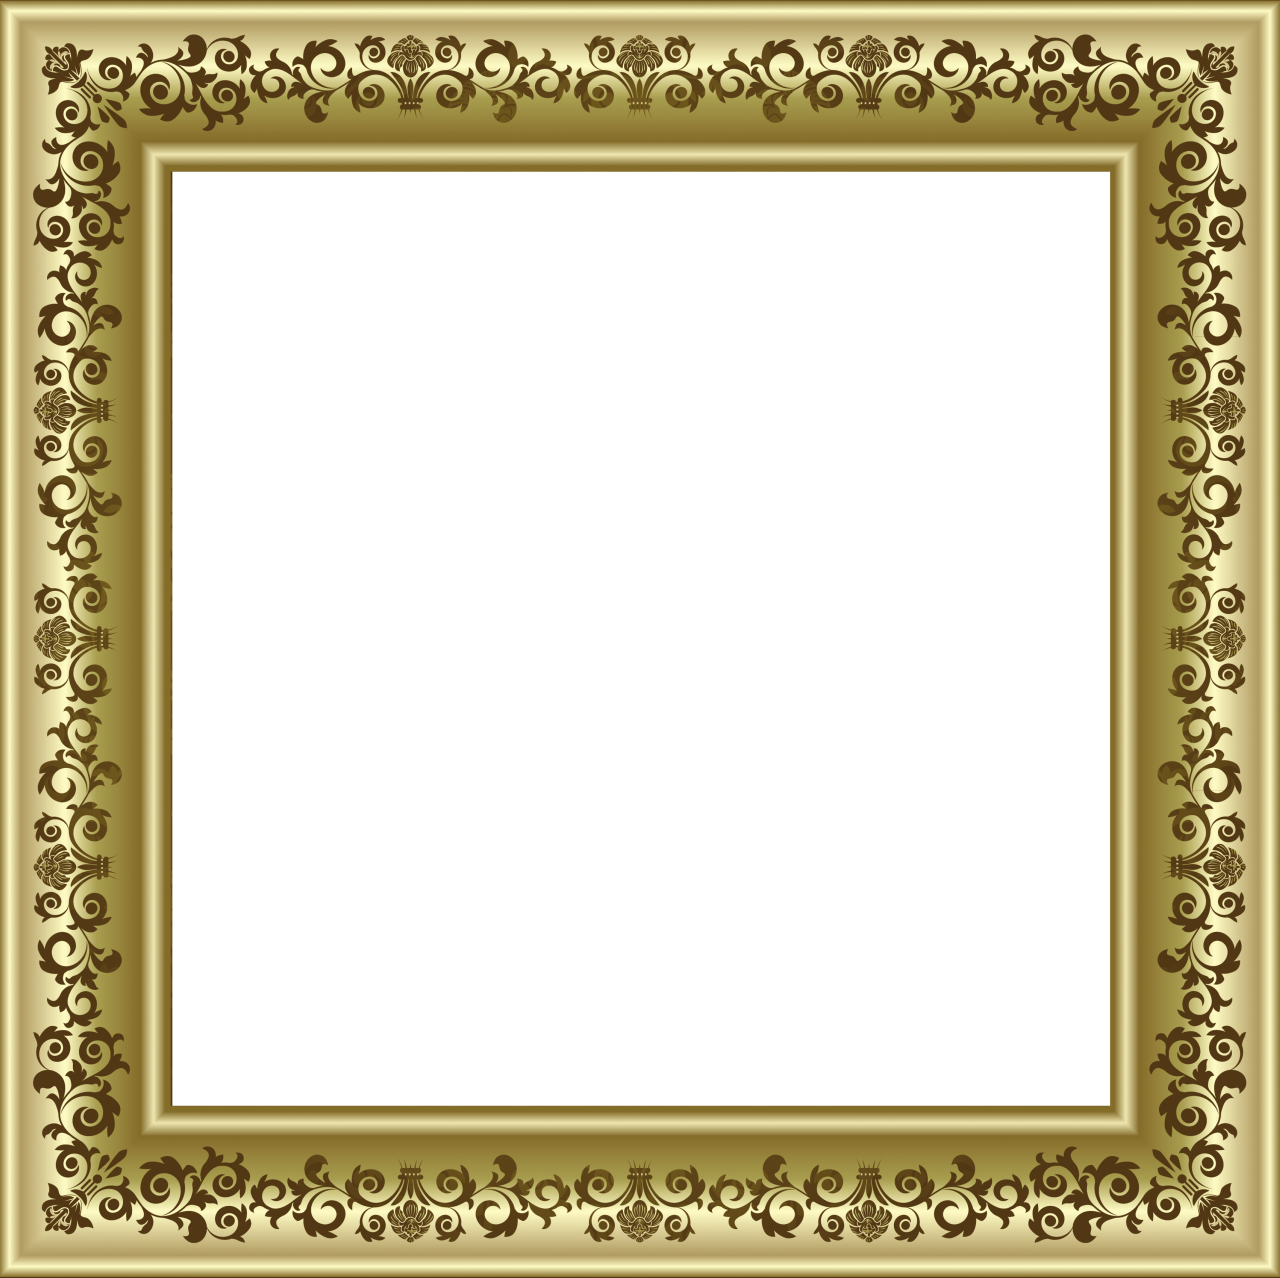 gold photo frame png with brown ornaments